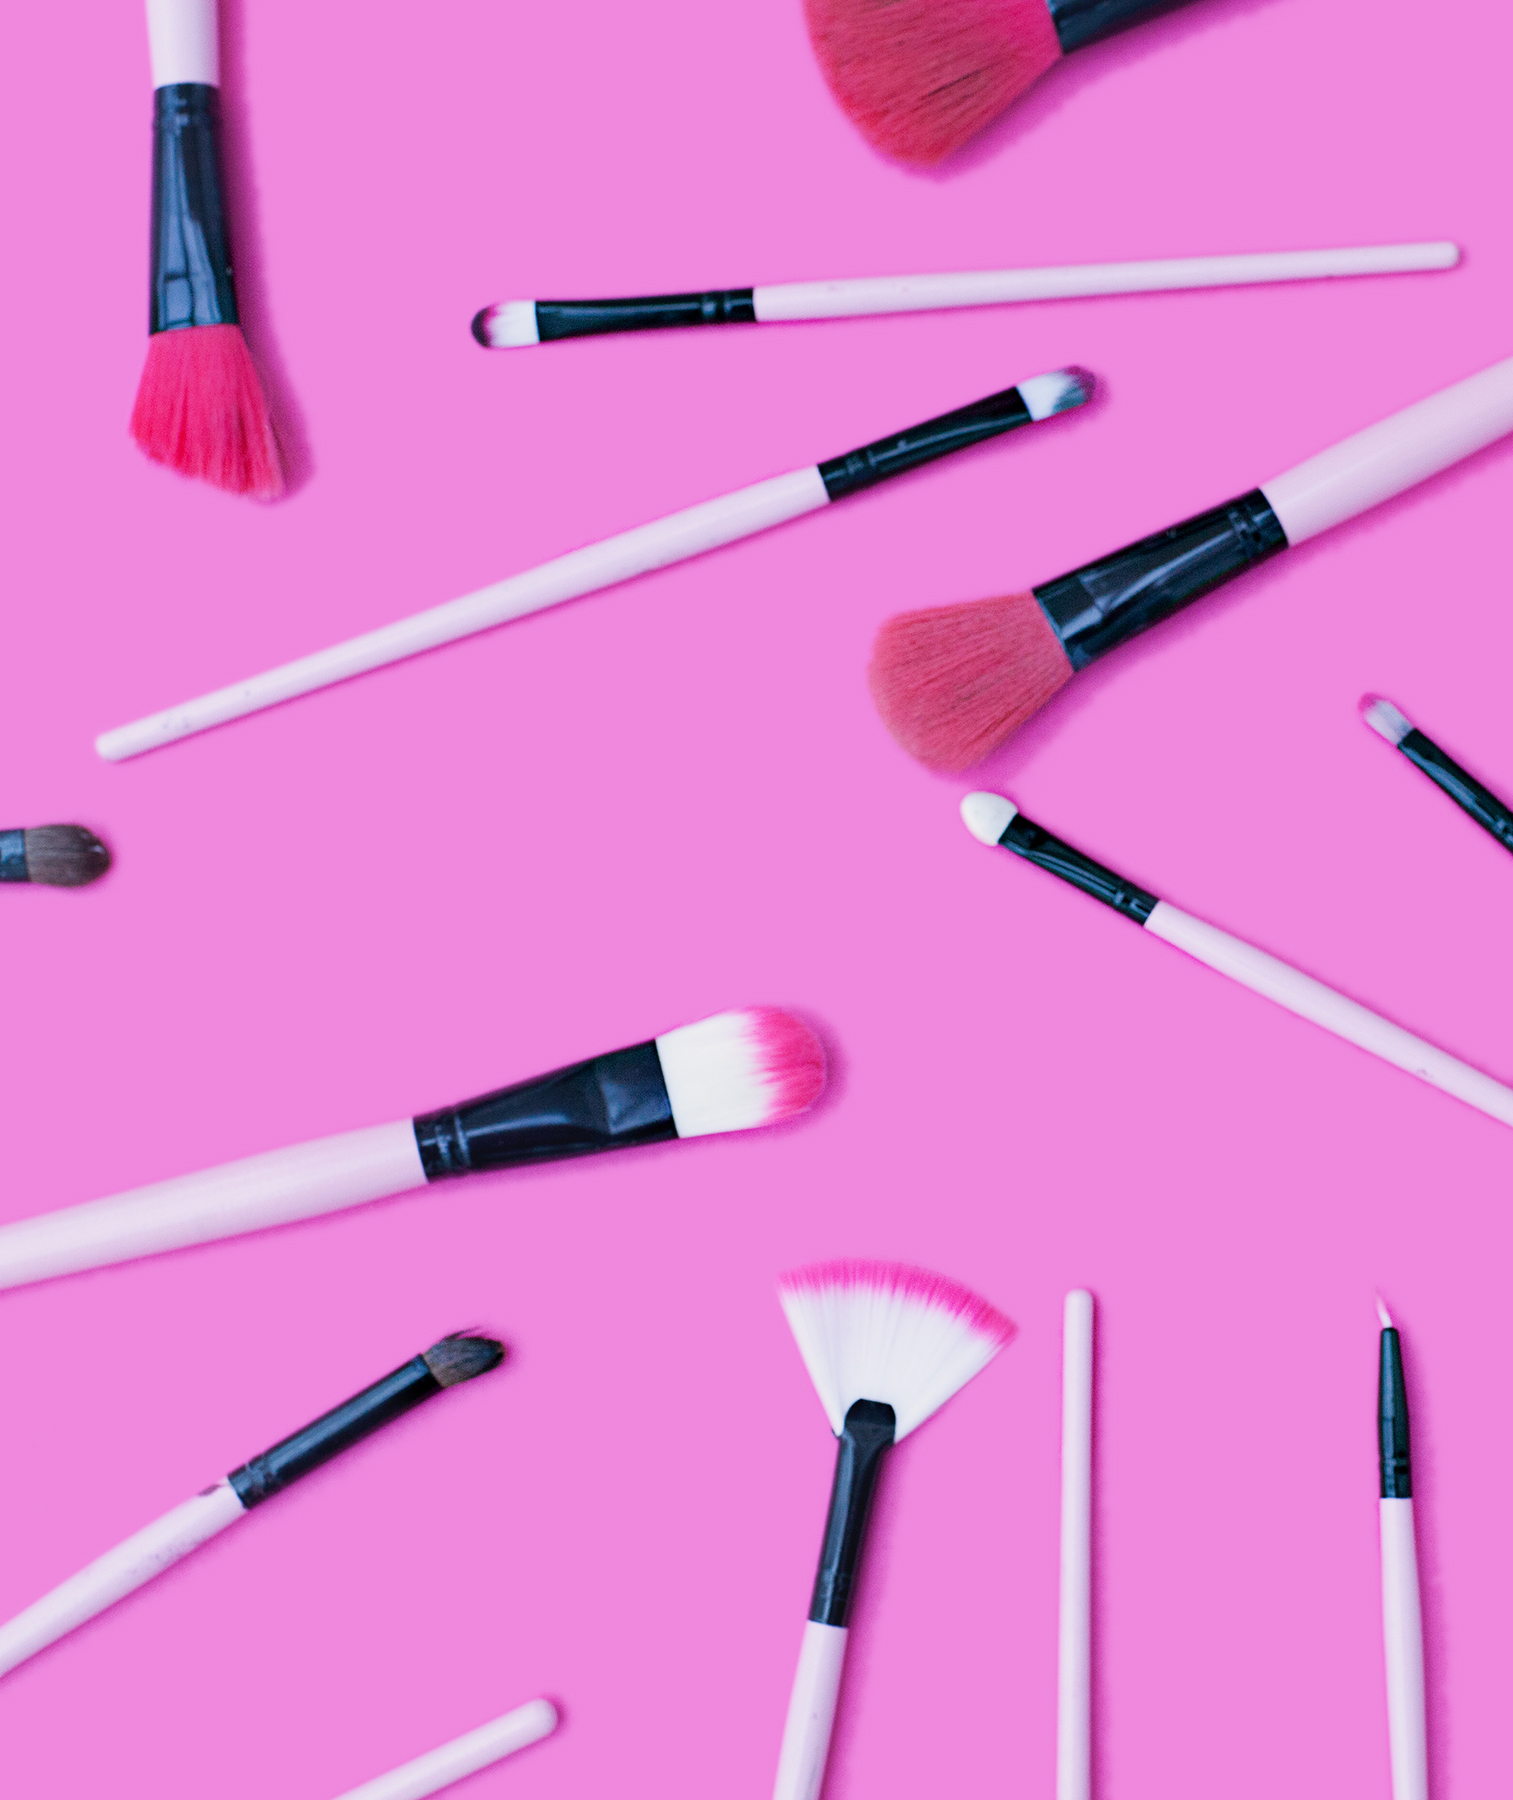 Makeup brushes on pink